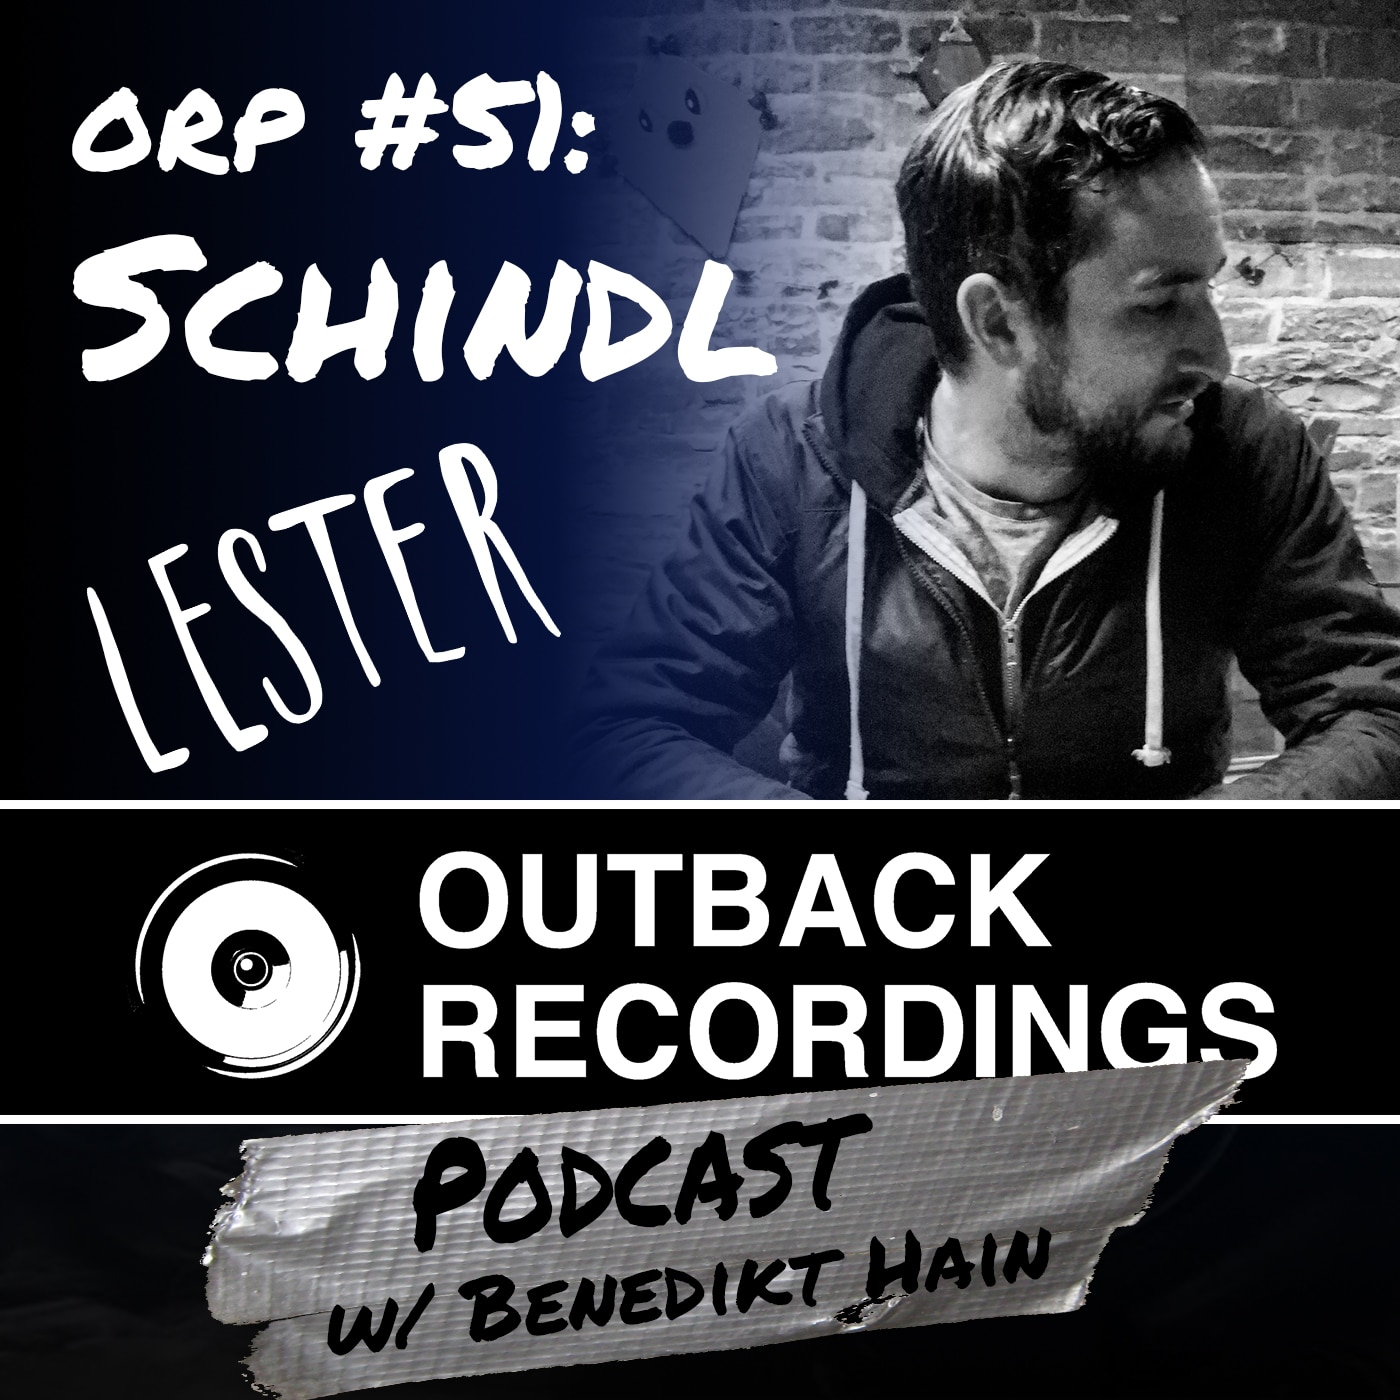 Podcast – ORP Session #51: Schindl (Lester)